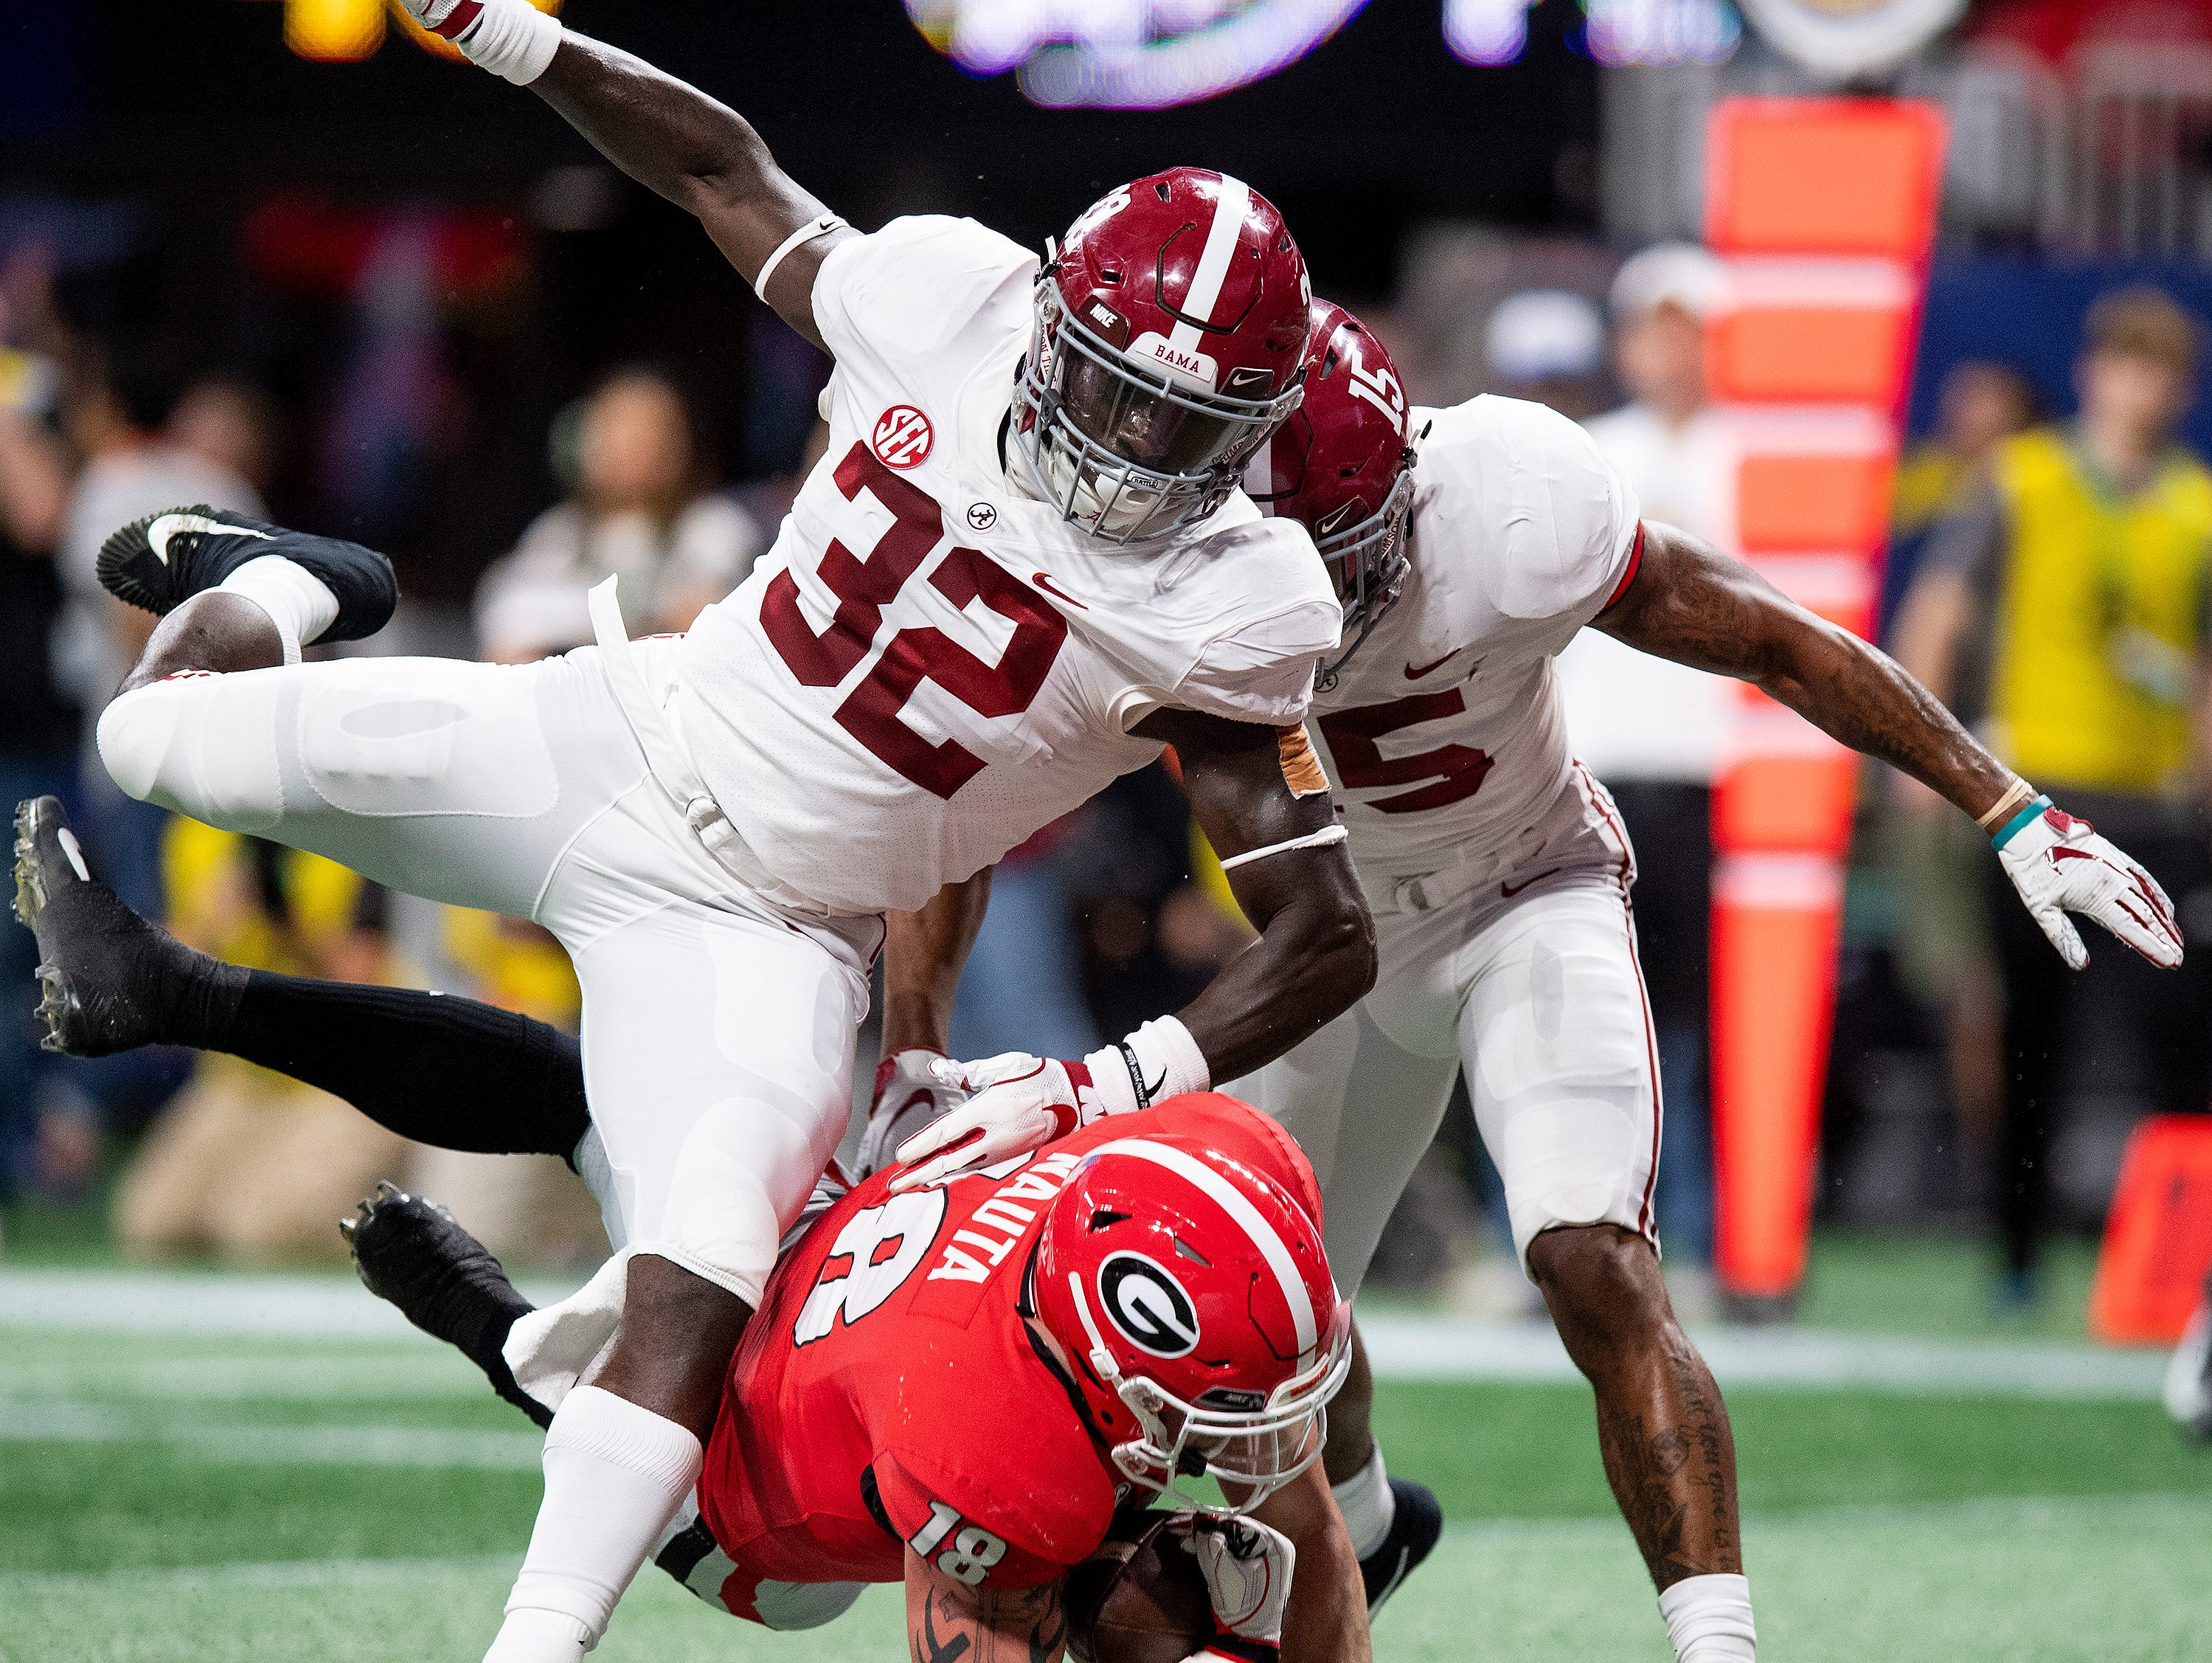 Georgia tight end Isaac Nauta (18) catches a pass for a touchdown against Alabama linebacker Dylan Moses (32) and defensive back Xavier McKinney (15) during first half action of the SEC Championship Game at Mercedes Benz Stadium in Atlanta, Ga., on Saturday December 1, 2018.